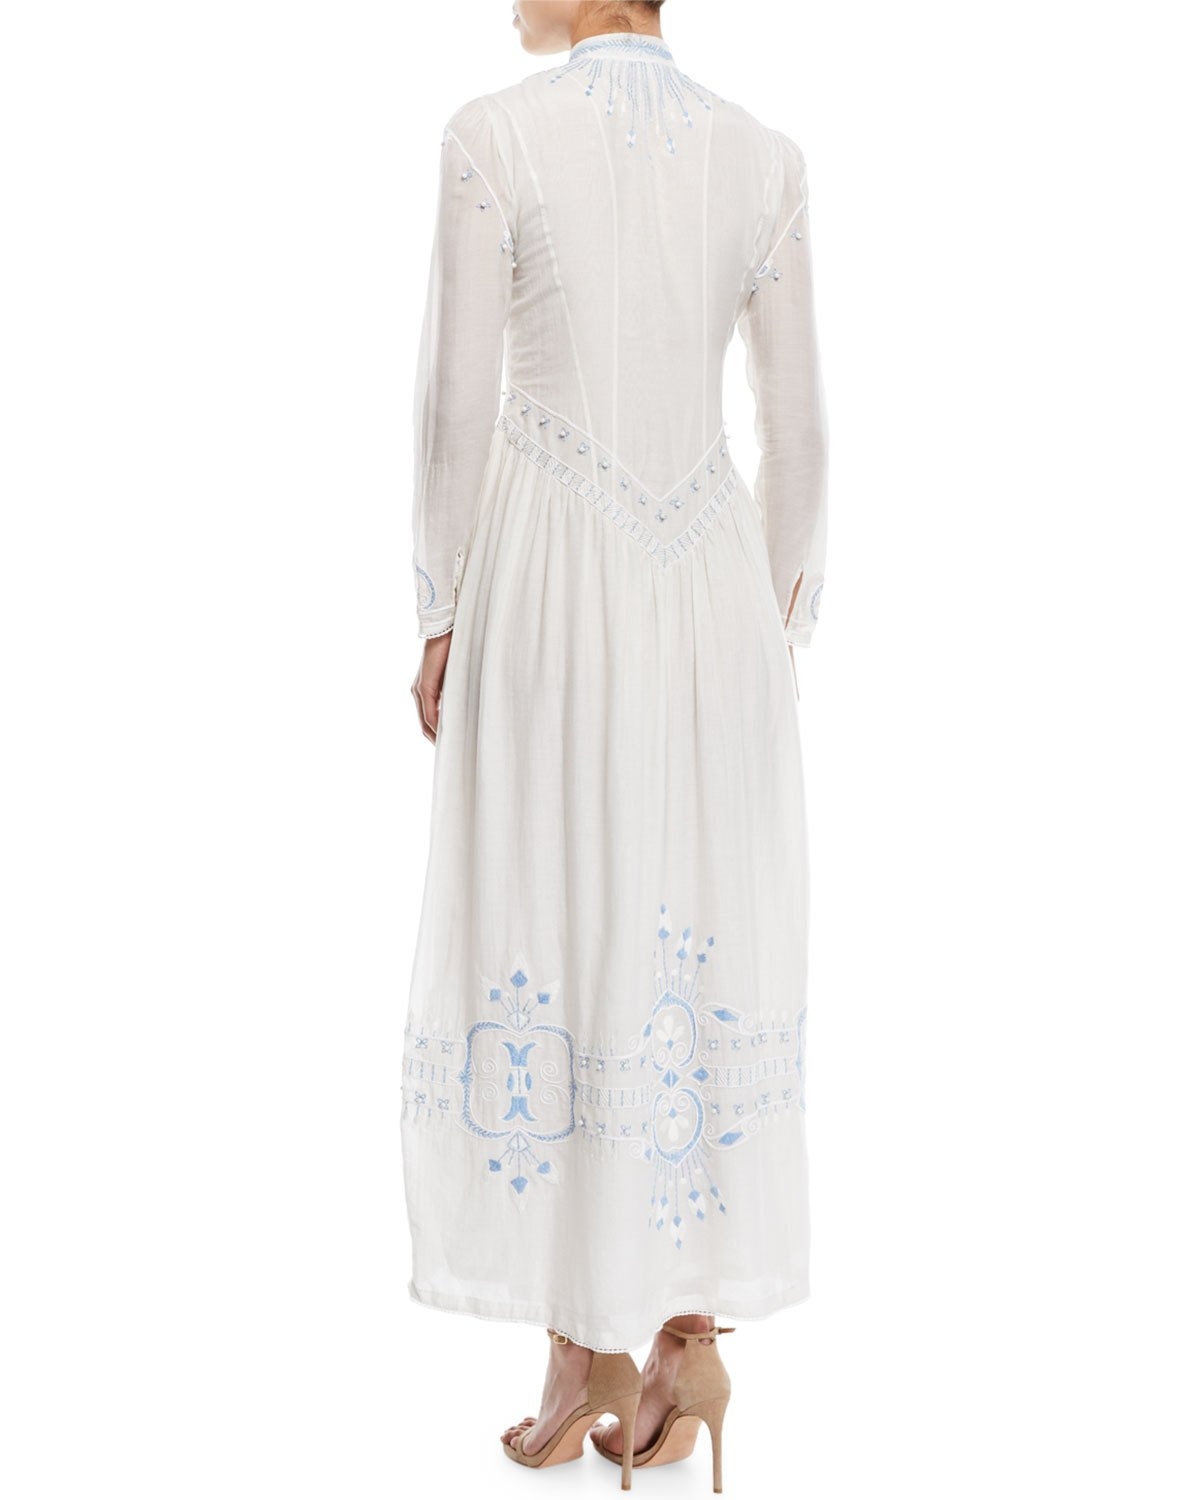 66f67d7c8d7 Talitha Collection Button-Front Embroidered Summer Robe Long Cotton Dress